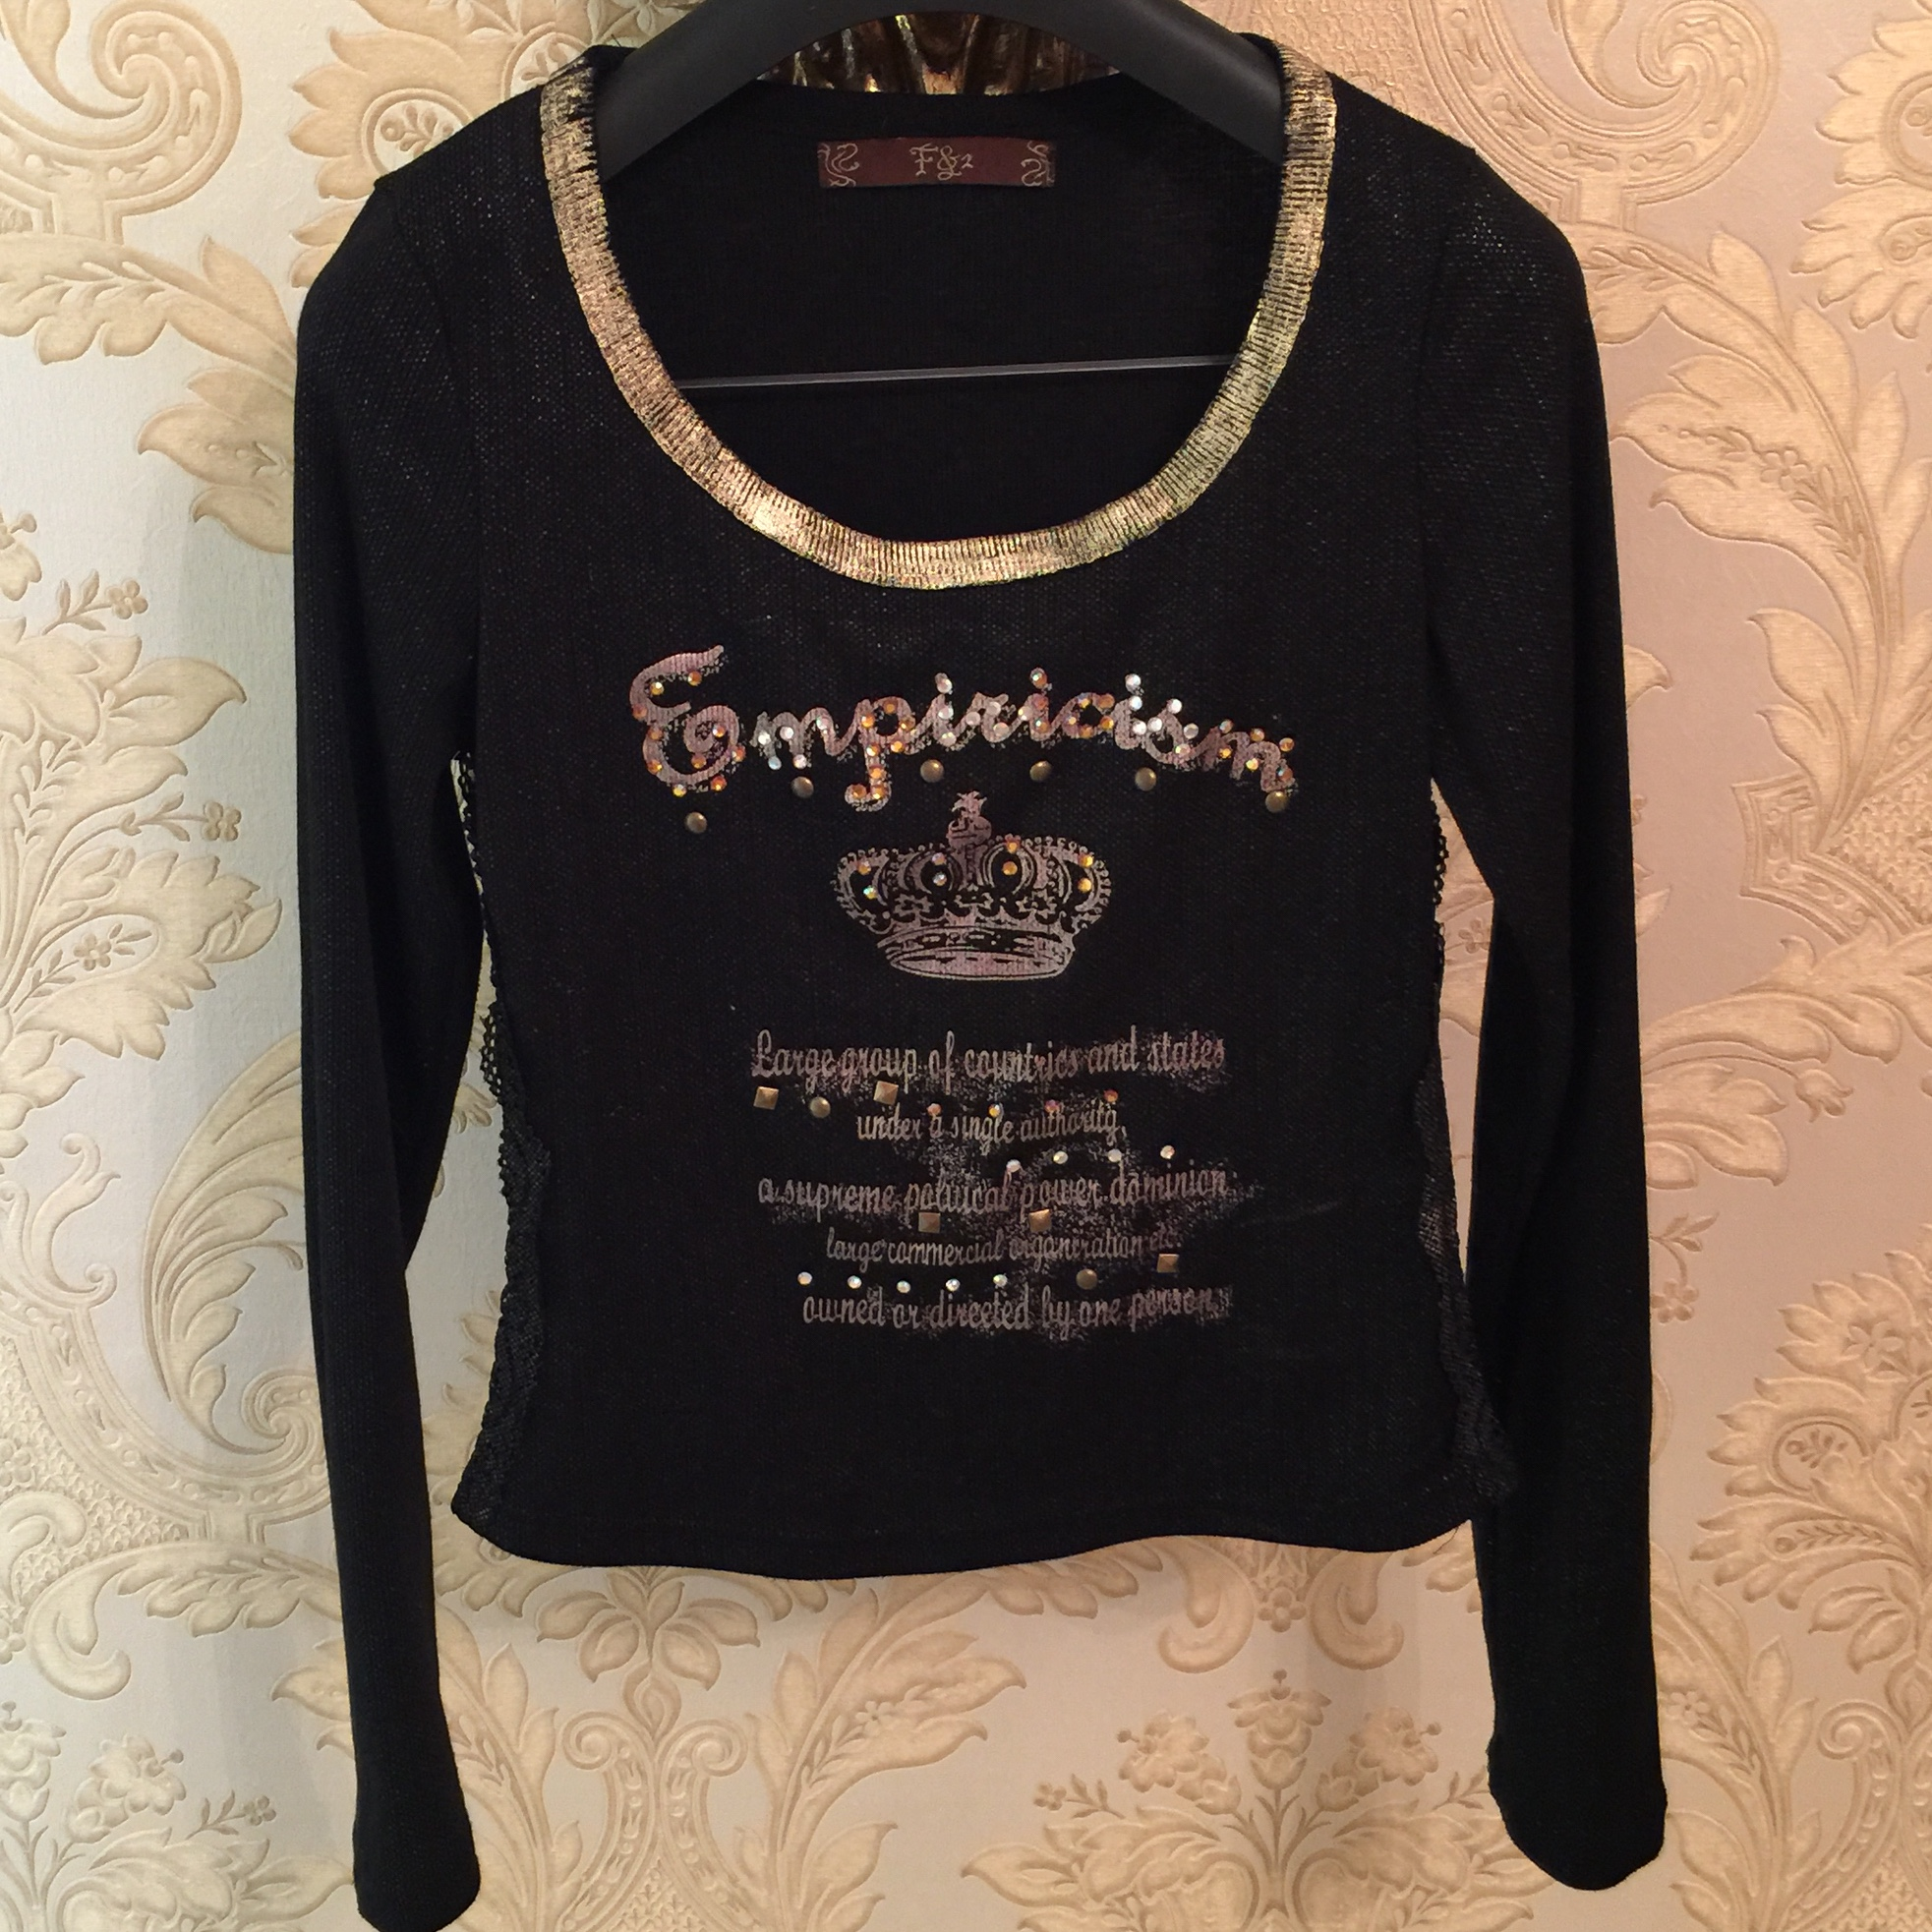 French boutique Y2K brand long sleeve black top with    - Depop